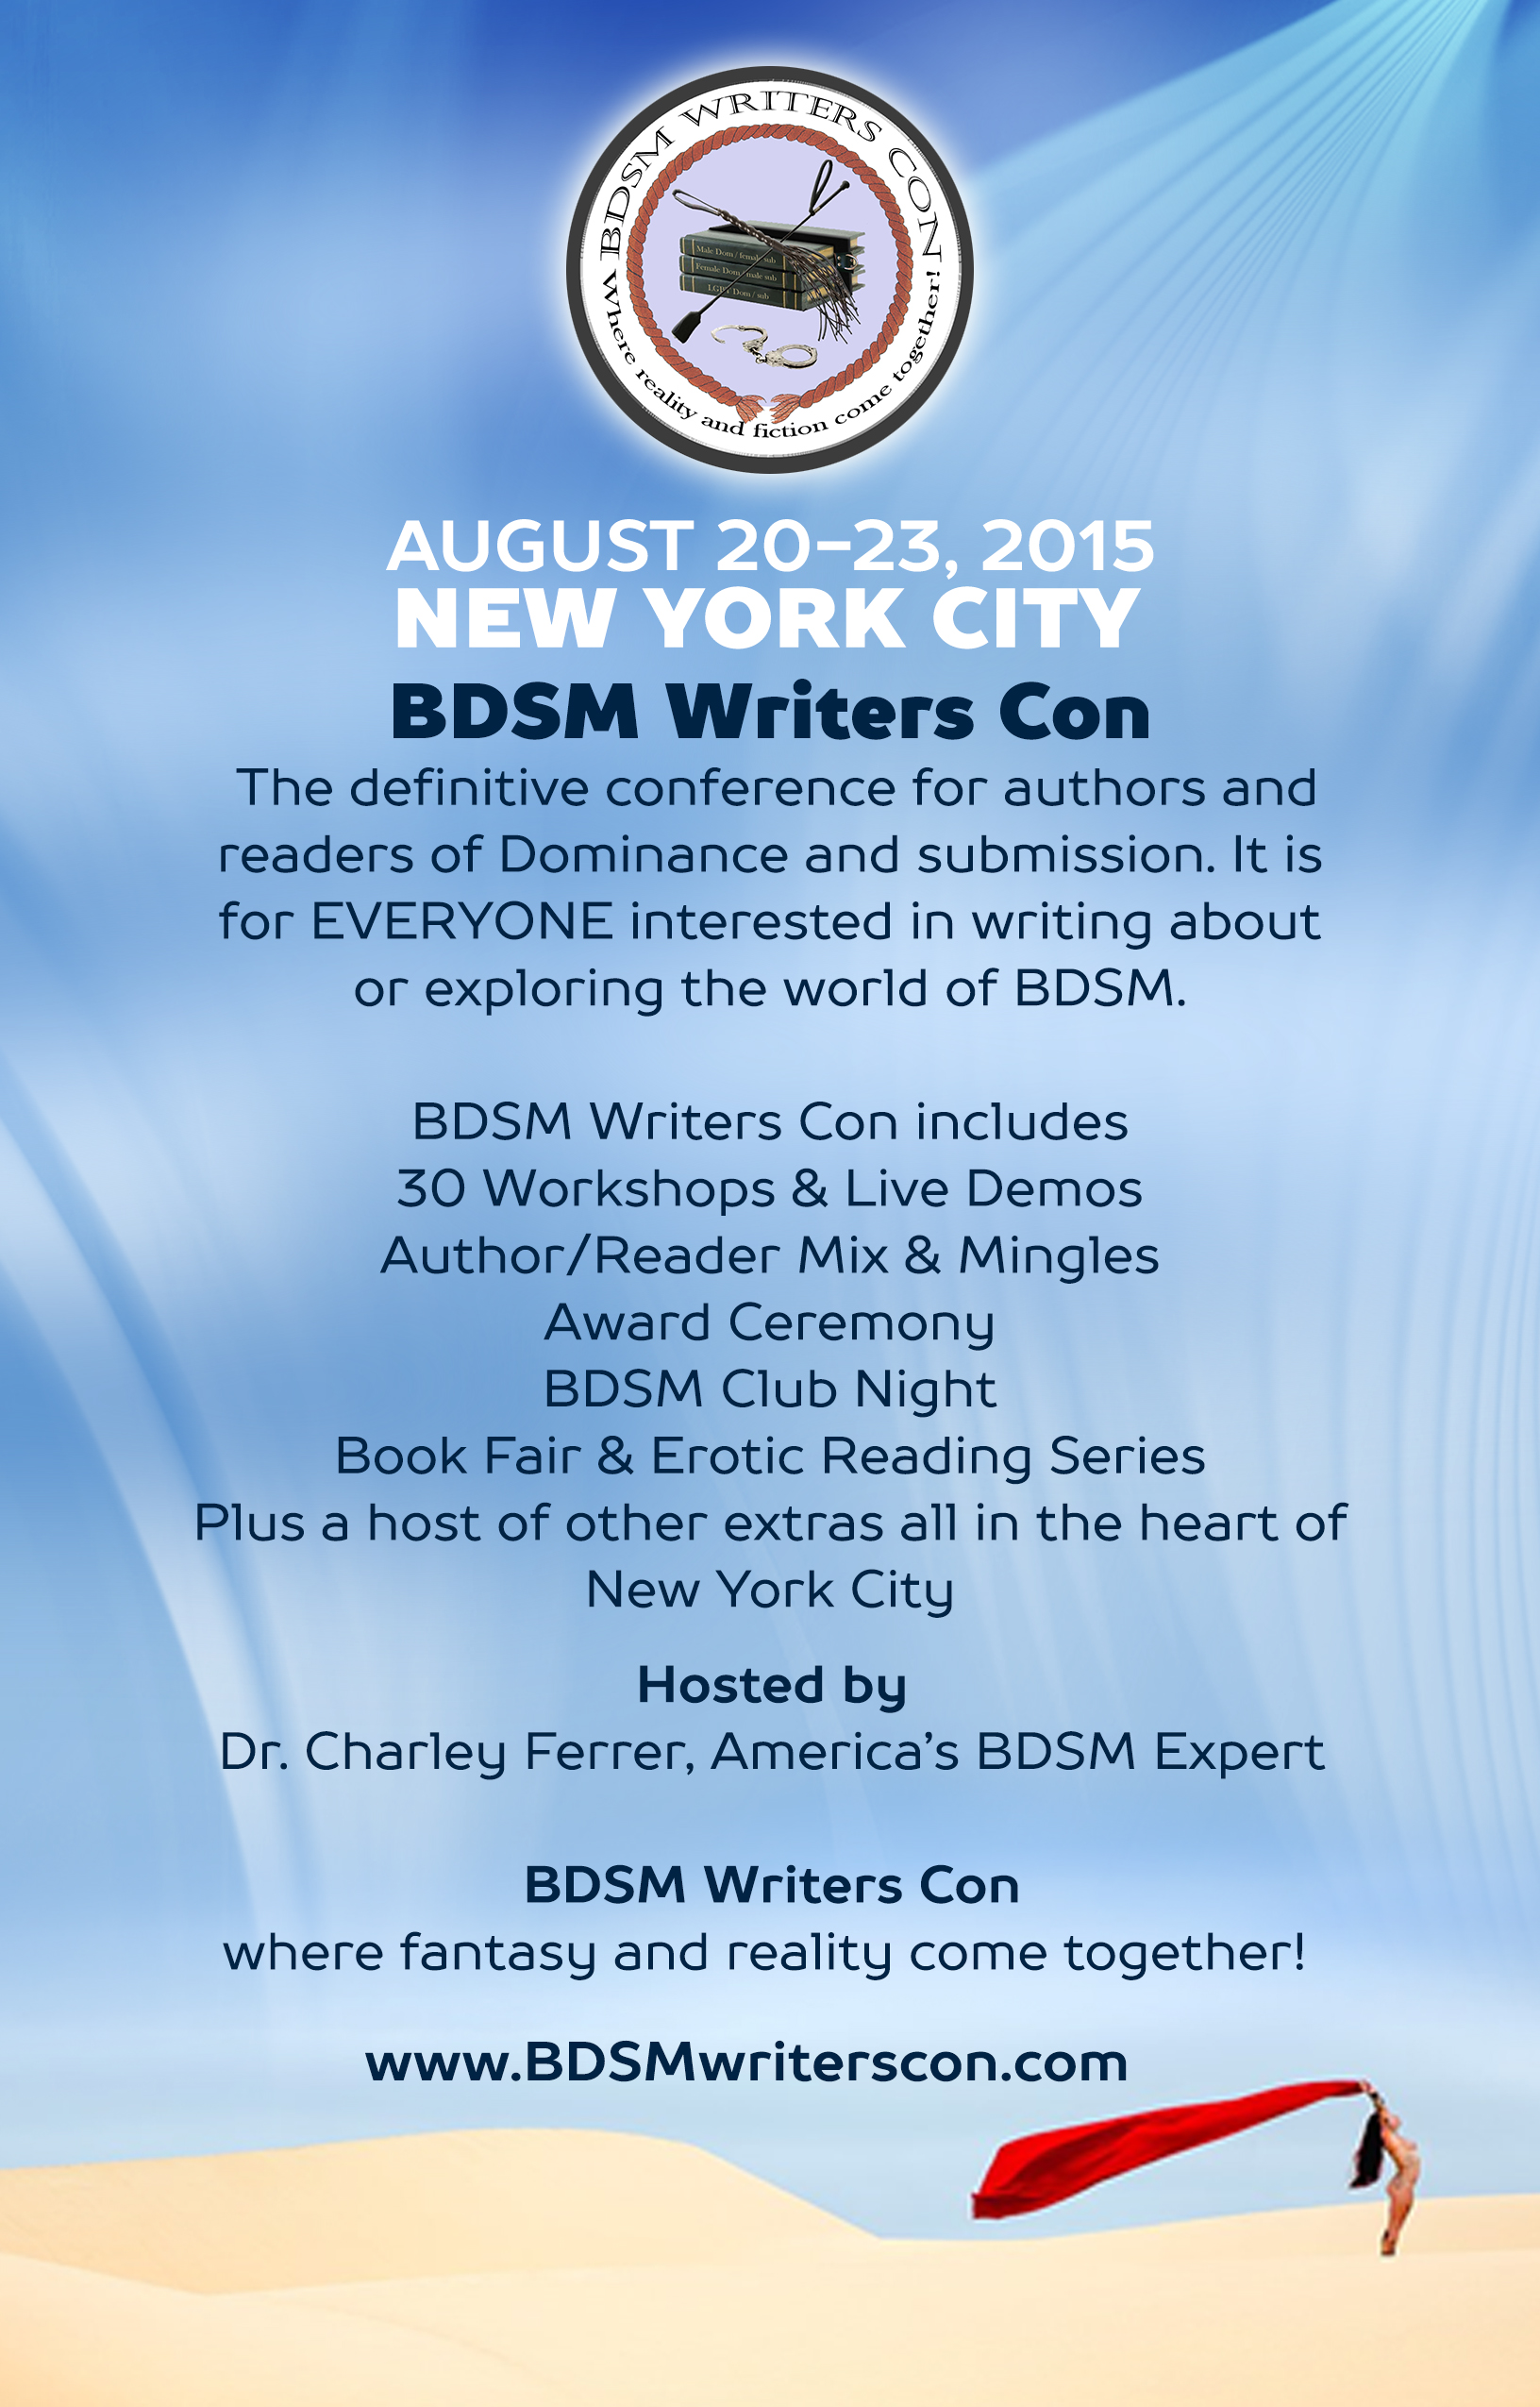 Join us for BDSM WRITERS CON August 20-23, 2015 in New York City